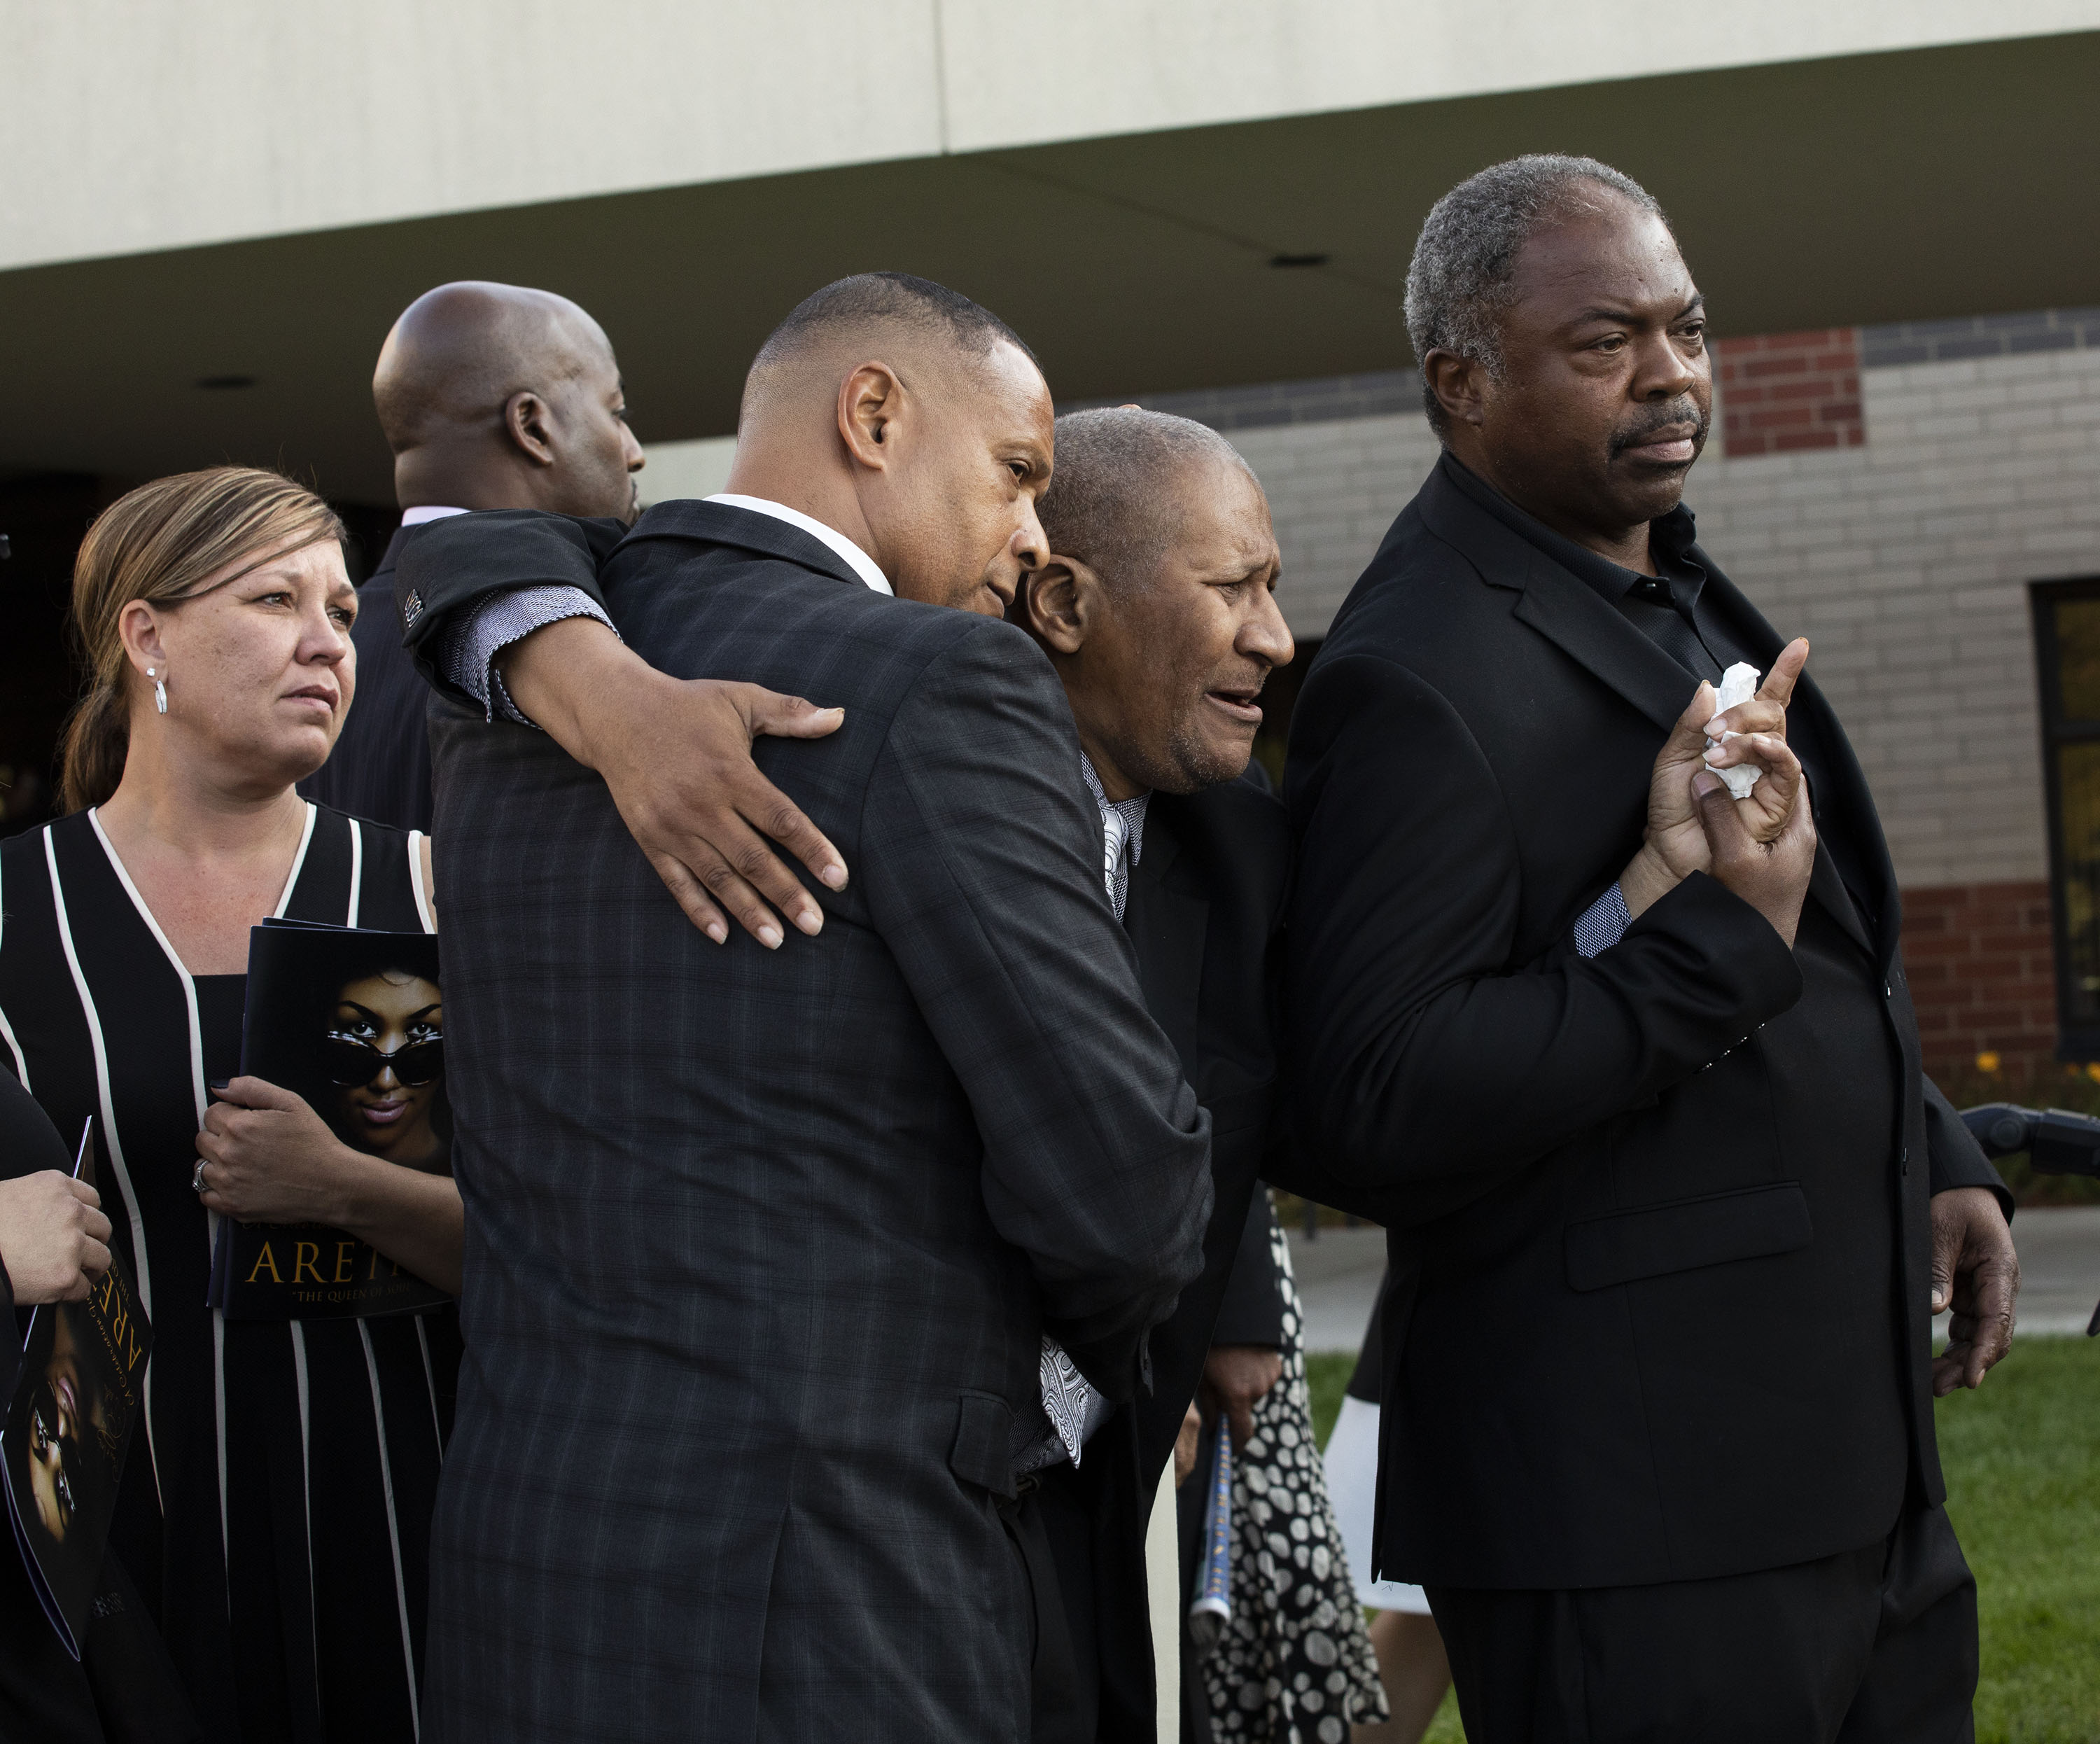 Clarence Franklin, Aretha Franklin's son, is supported by two friends after his mother's funeral on August 31, 2018 in Detroit, Michigan | Photo: Getty Images